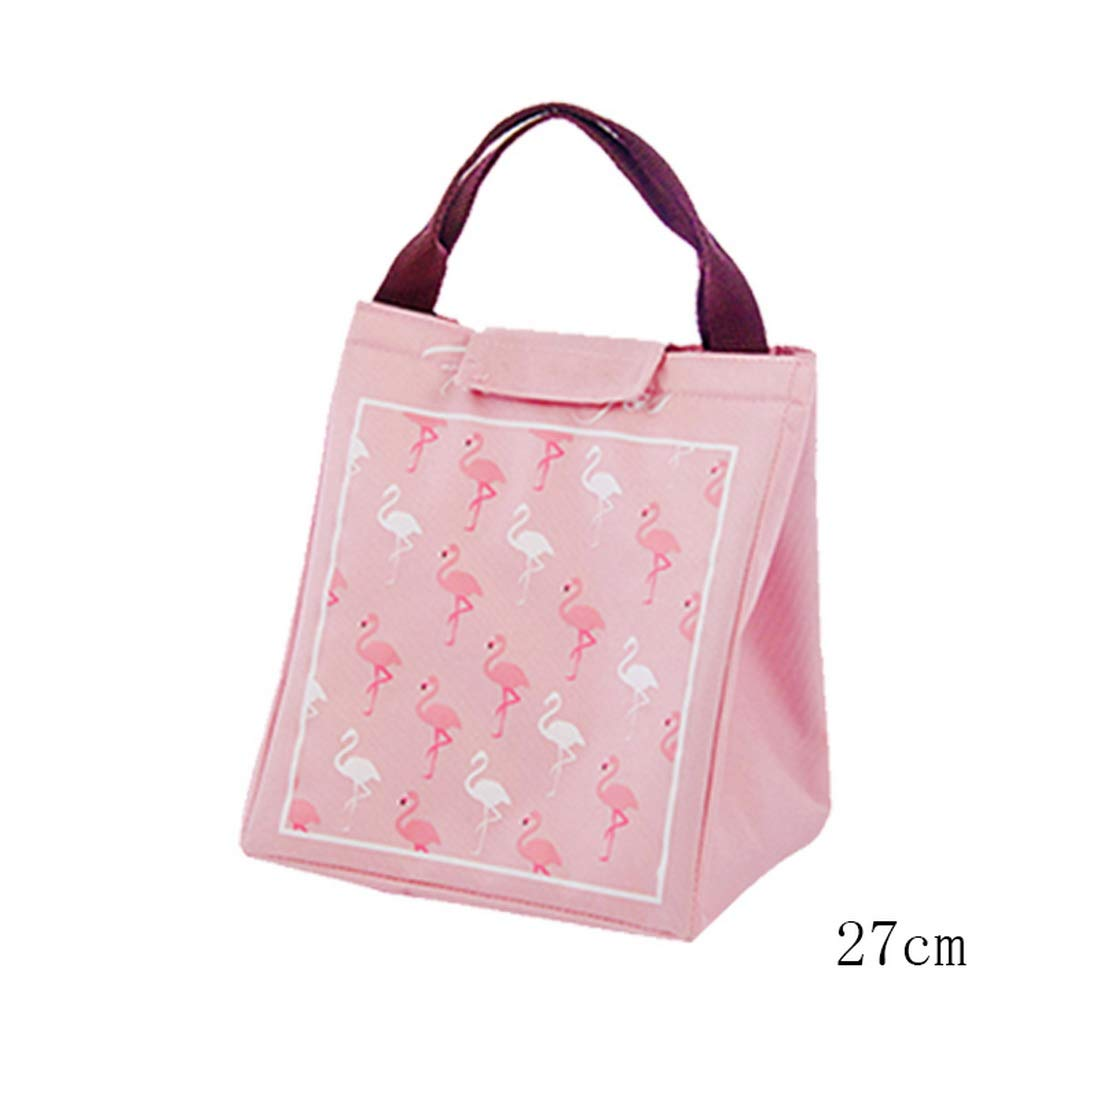 Godagoda Flamingo Thermal Bag Waterproof Oxford Beach Lunch Bag